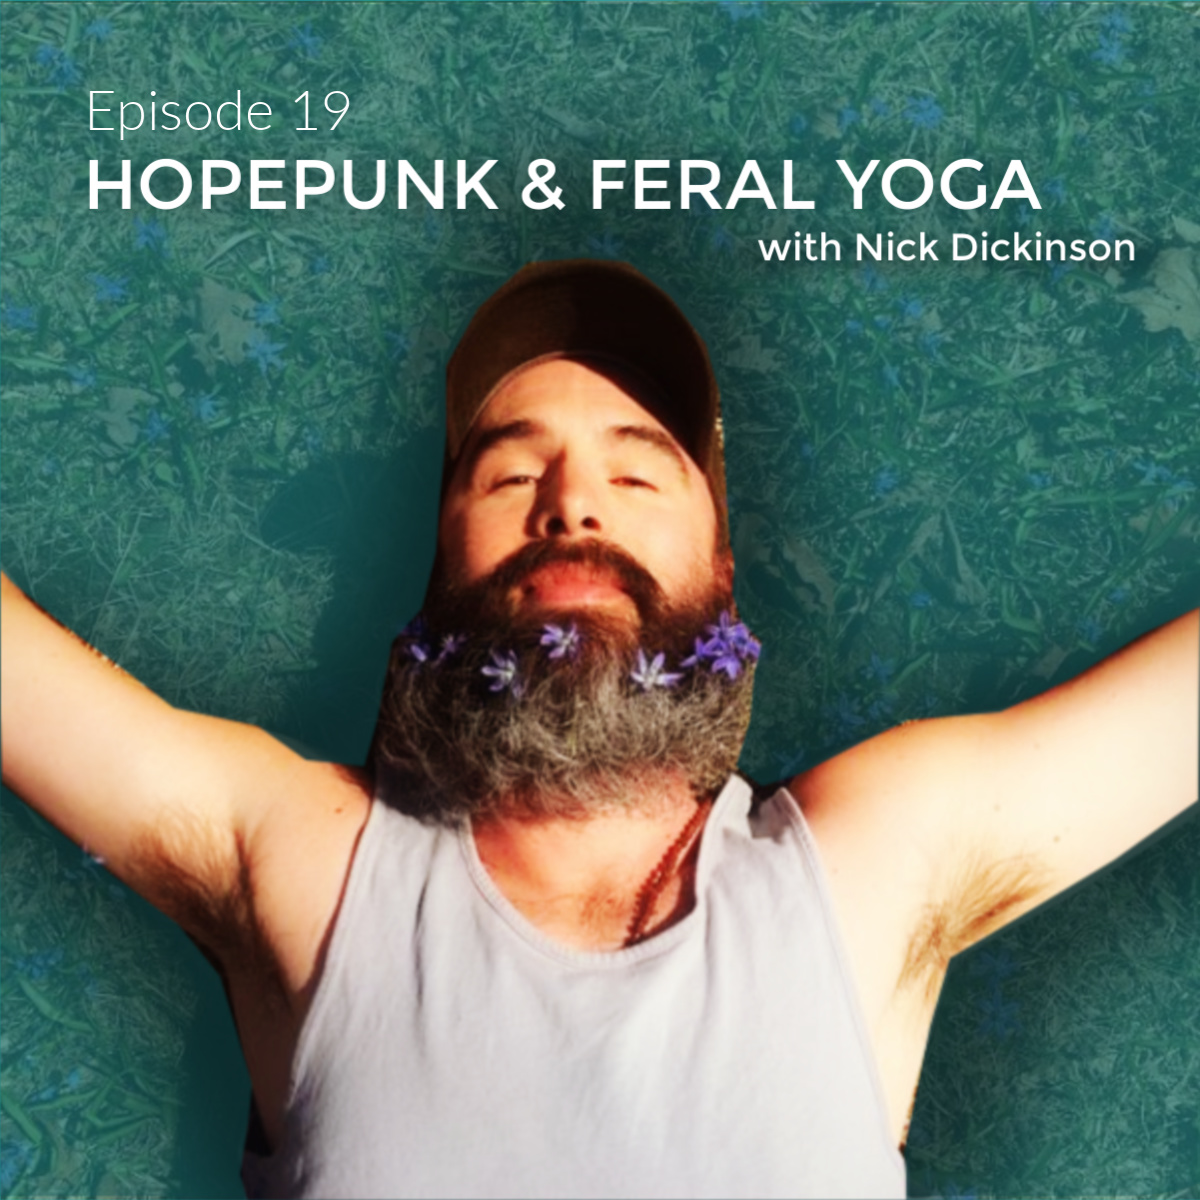 Hopepunk & Feral Yoga with Nick Dickinson